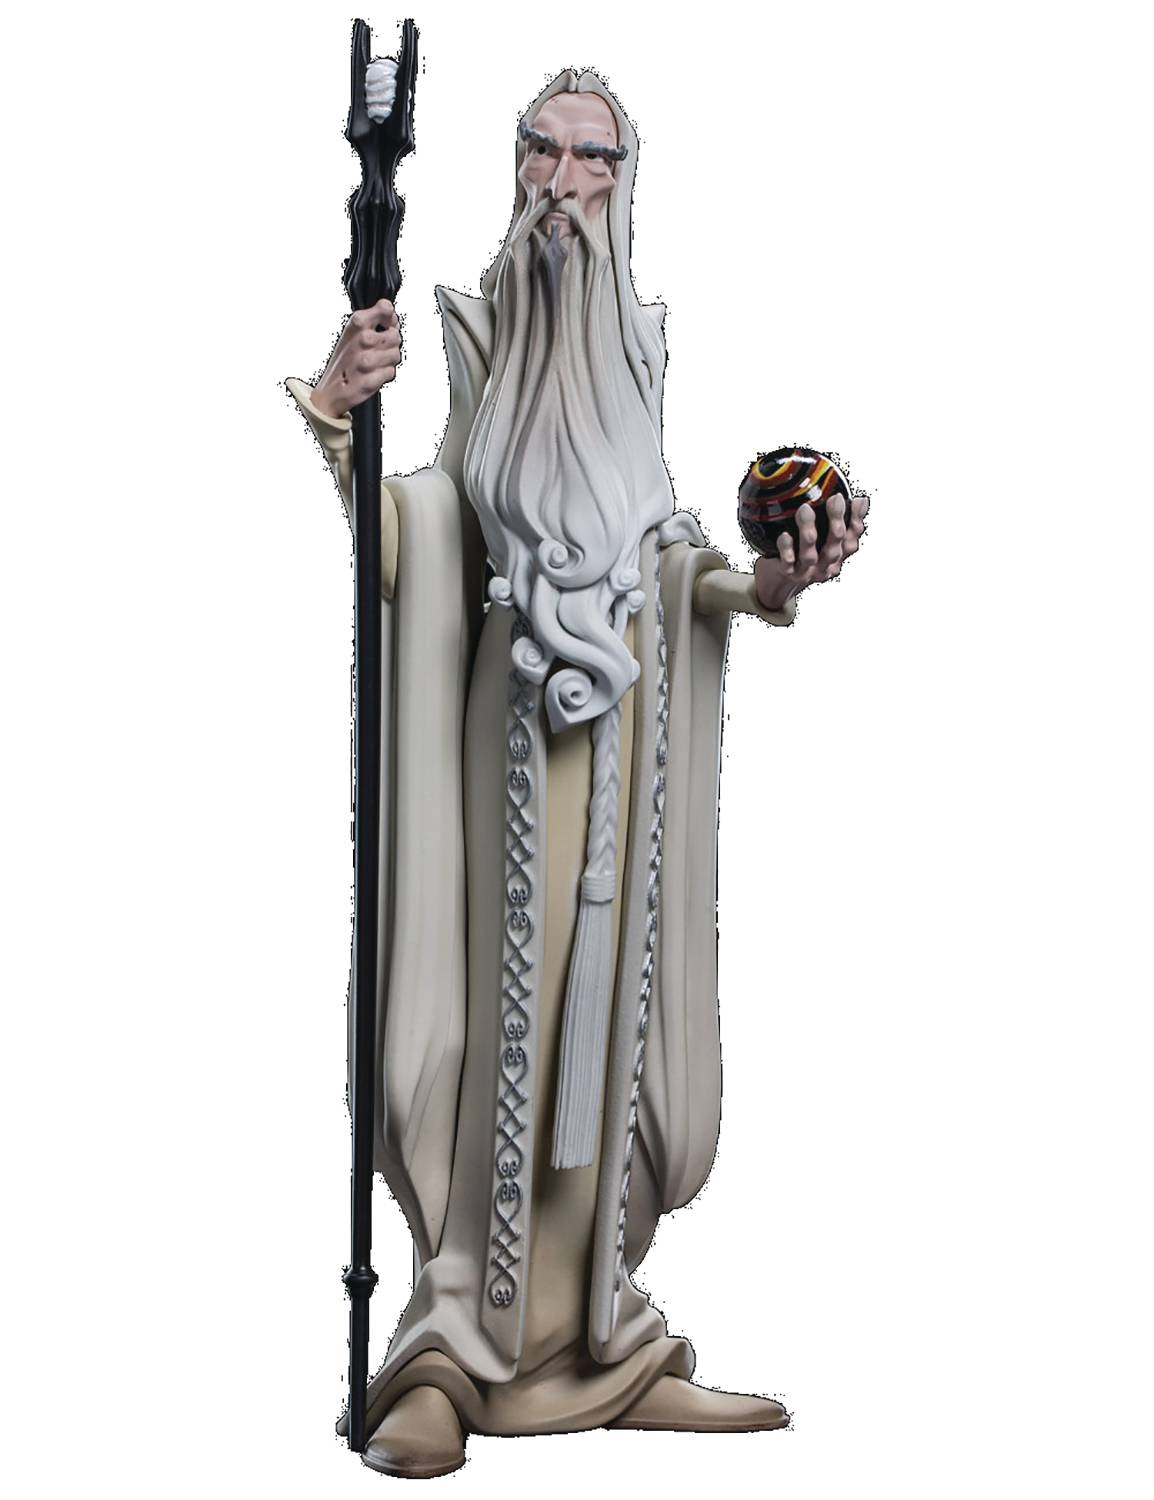 MINI EPICS LOTR SARUMAN VINYL FIG